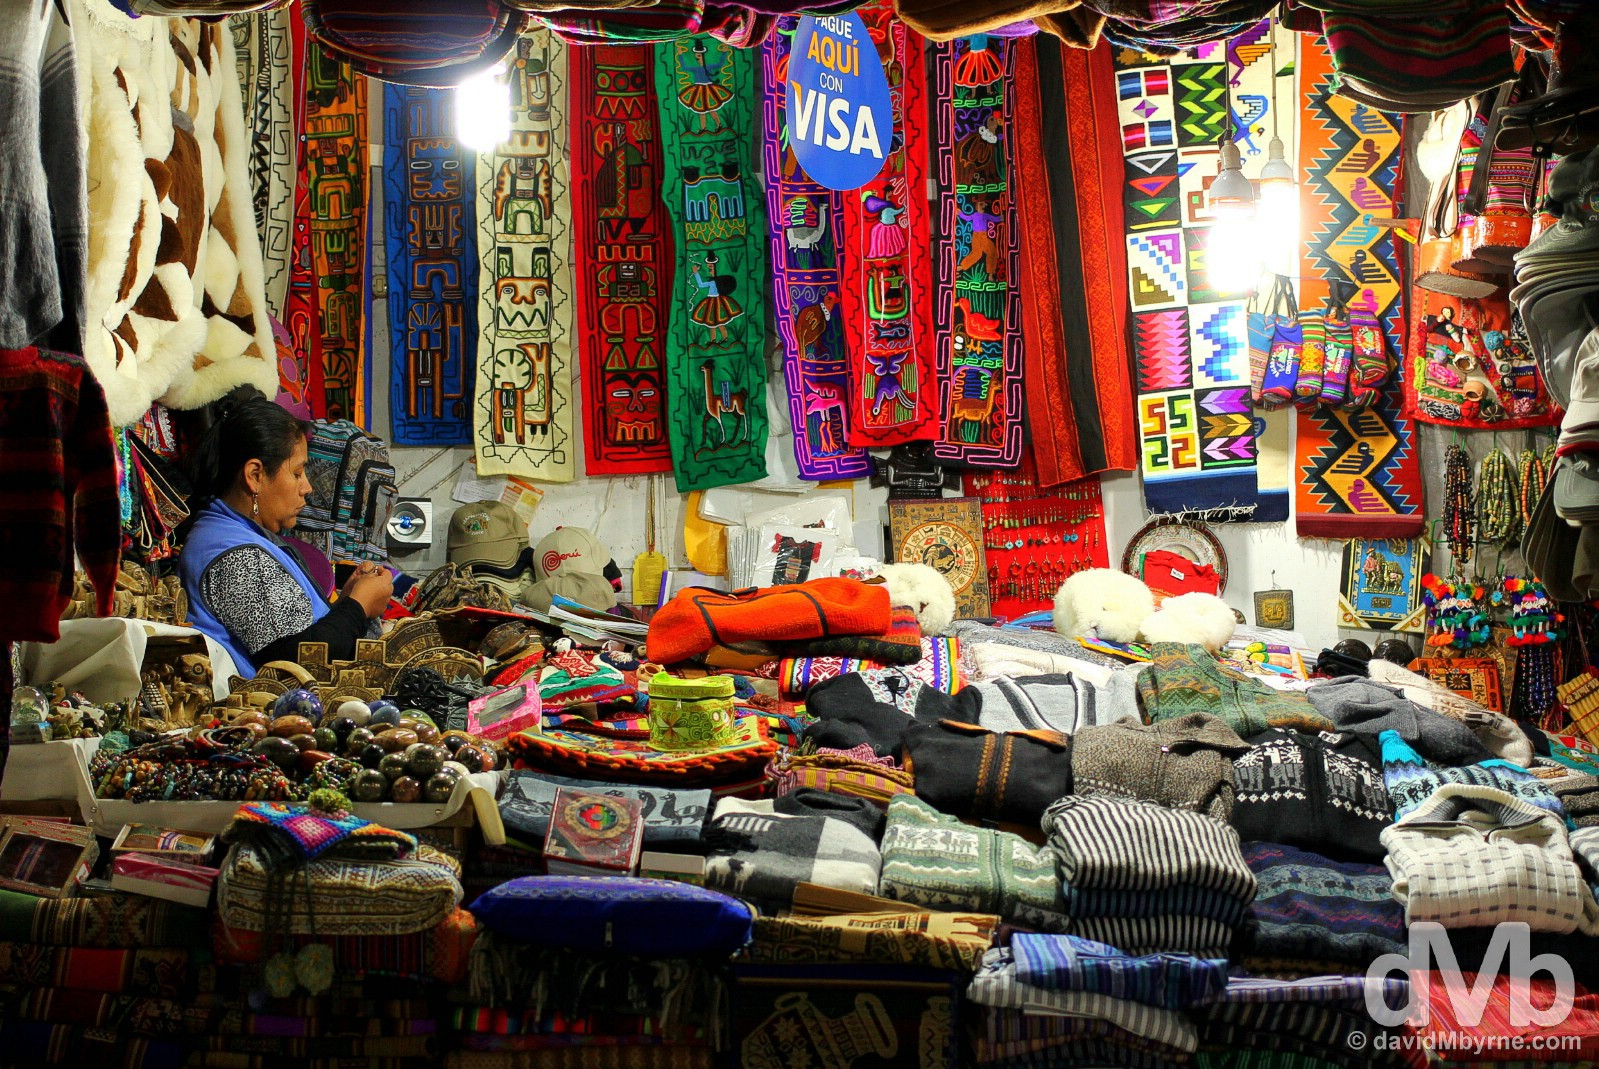 A market stall in Machu Picchu Peublo/Aguas Calientes, Peru. August 14, 2015.